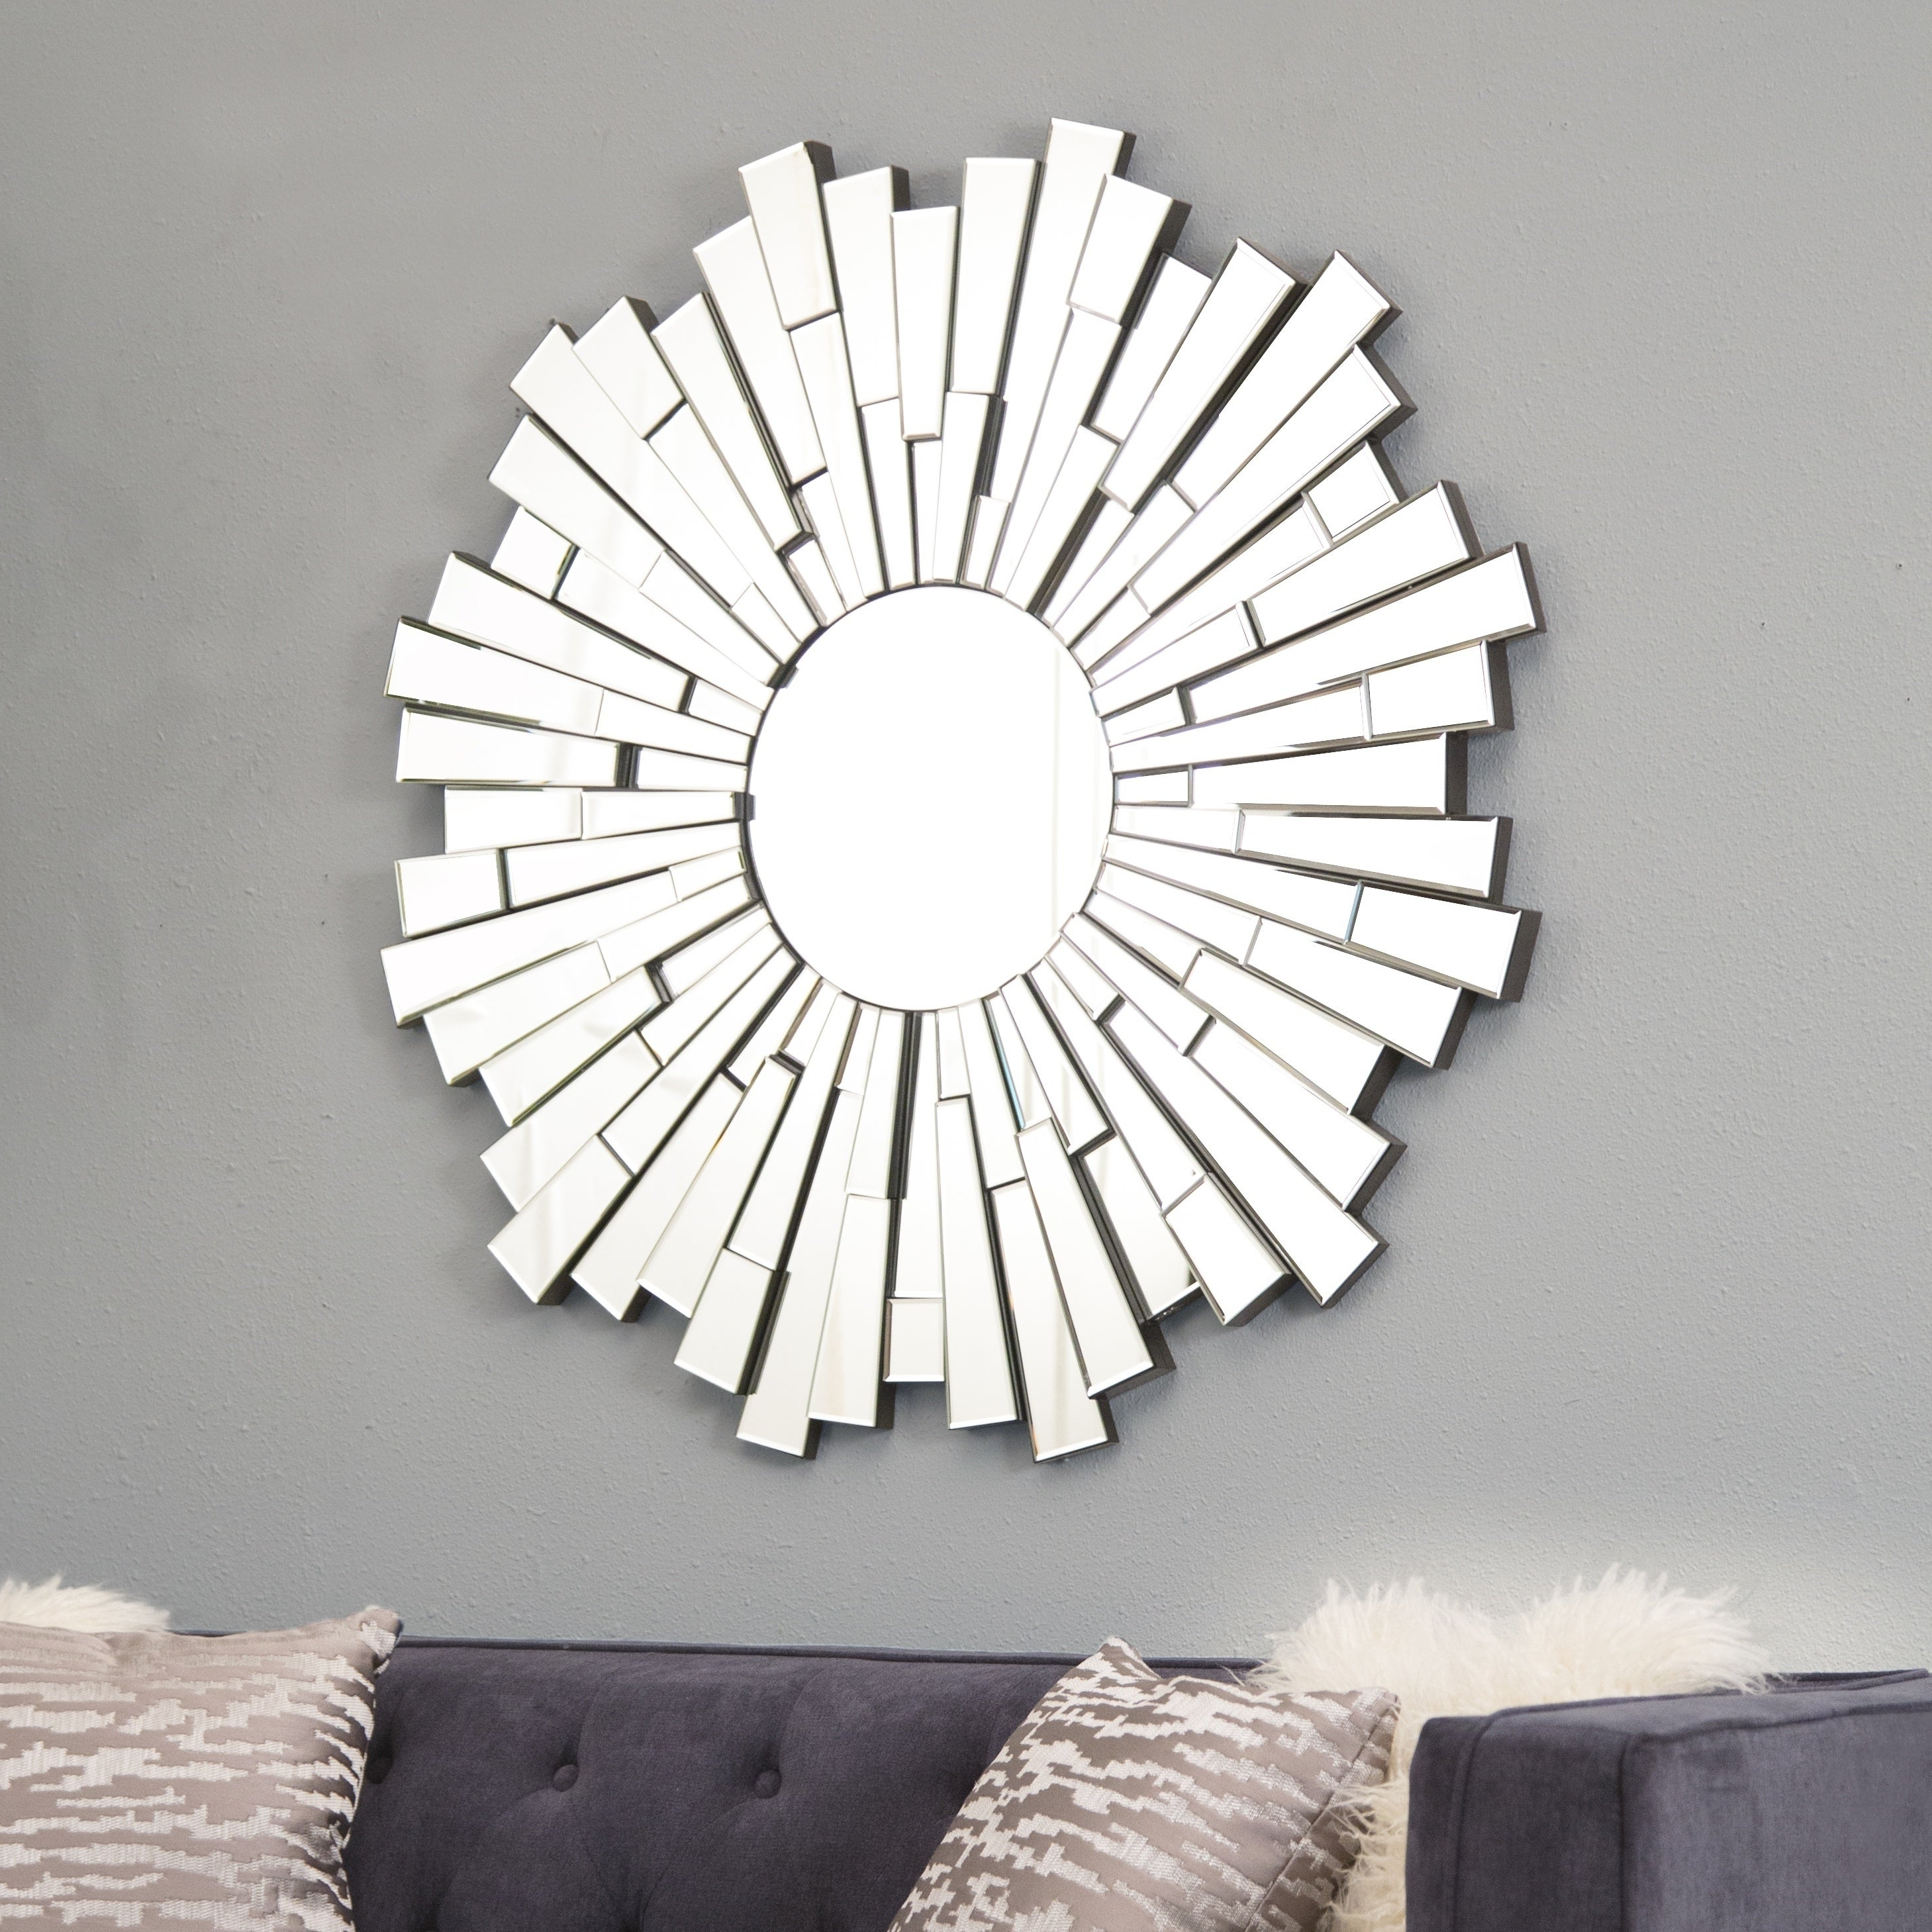 Abbyson Empire Burst Round Wall Mirror – Silver In Most Recent Circle Wall Mirrors (View 10 of 20)